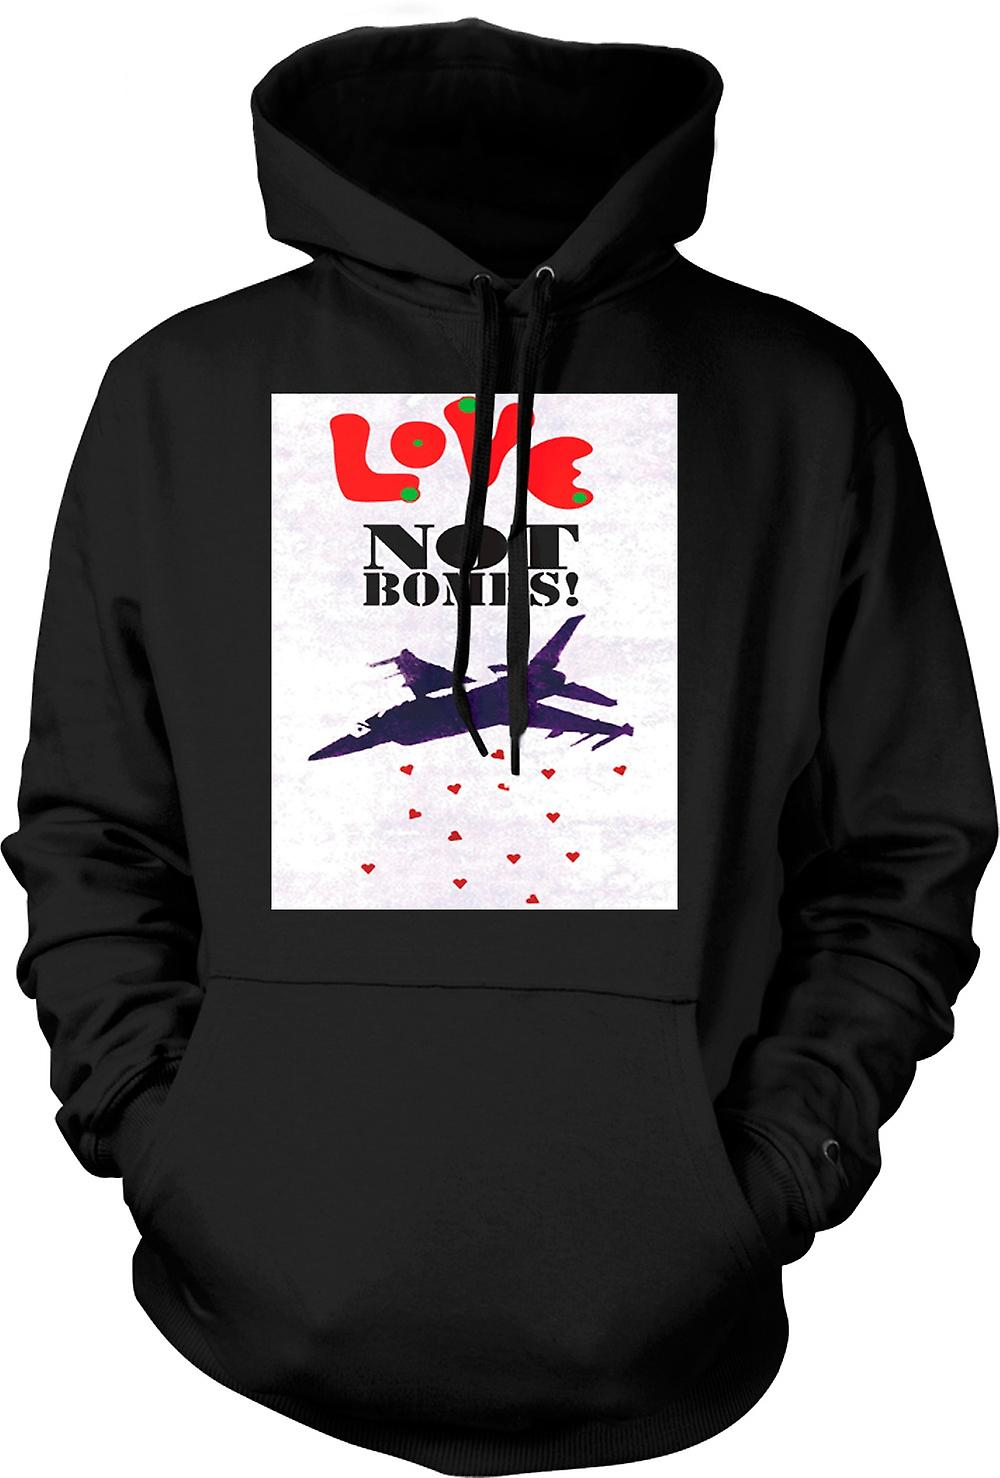 Mens Hoodie - Love Not Bombs - Peace